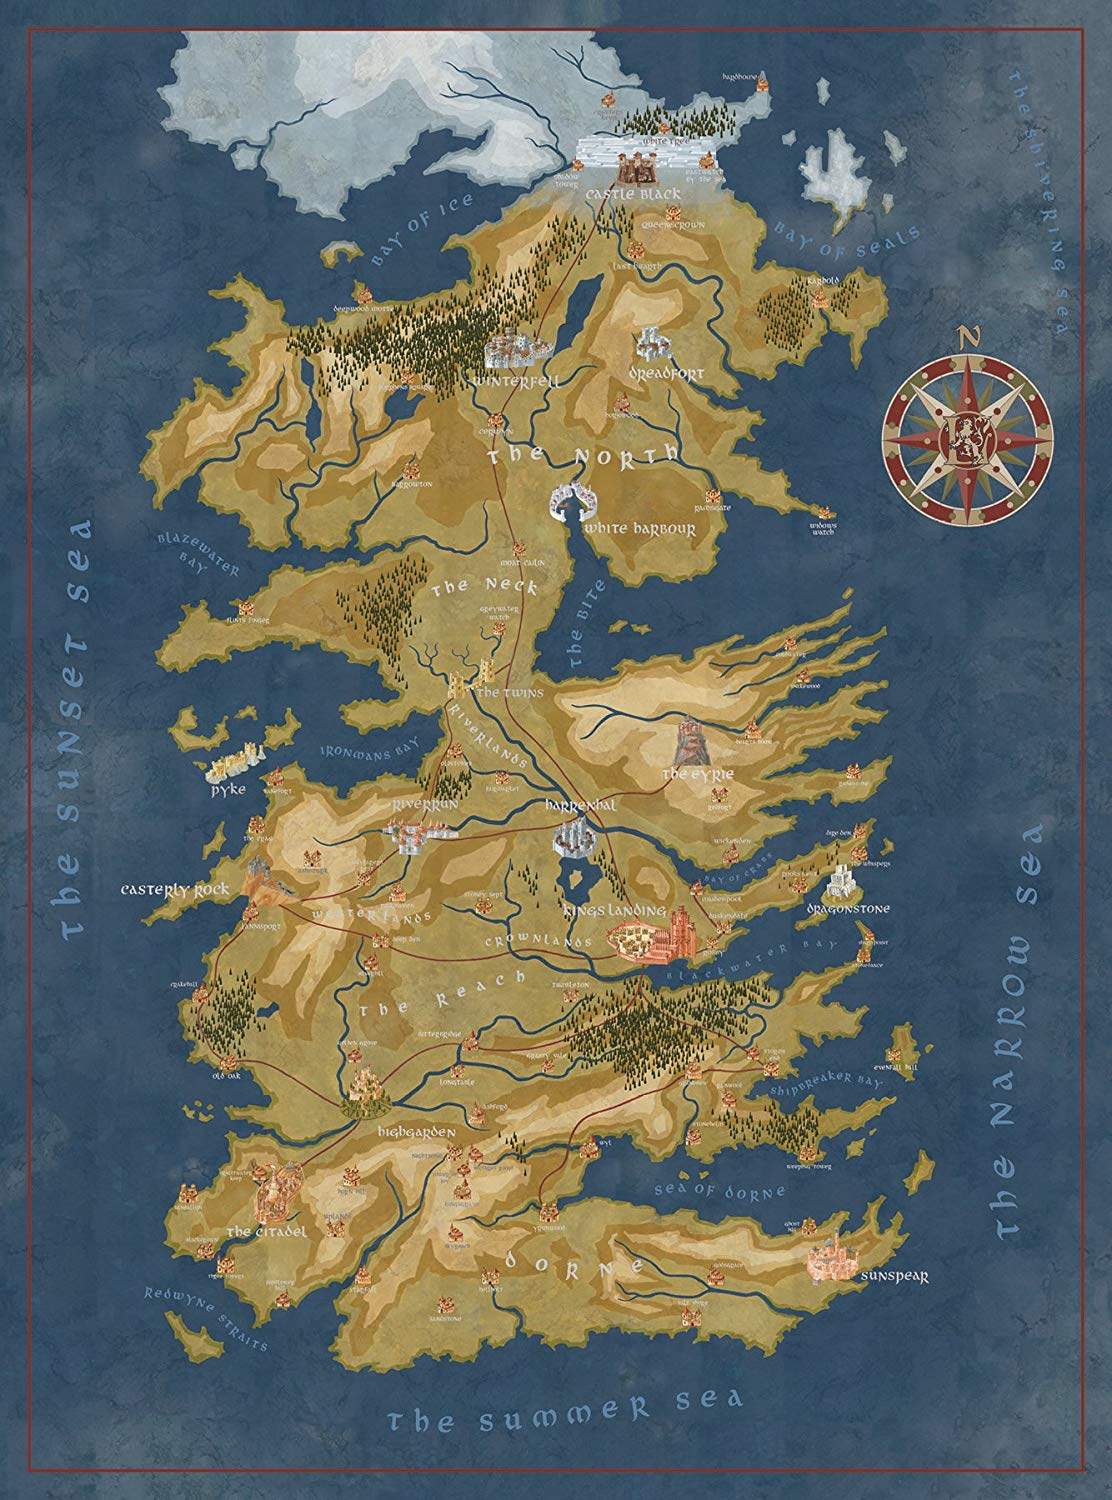 Westeros | Game of Thrones Wiki | FANDOM powered by Wikia on game of thrones winterfell map, canvas game of thrones map, 1868 german kingdoms map, game of thrones full map, game of thrones city map, game of thrones board game map, game of thrones highgarden map, game of thrones realm map, game of thrones ireland locations map, game of thrones map of continents, game of thrones interactive map, game of thrones map clans, game of thrones the red keep map, game of thrones map wallpaper, game of thrones political map, game of thrones westeros map, game of thrones king's landing map, game of thrones book map, kingdoms in anglo-saxon england map, diplomacy game of thrones map,